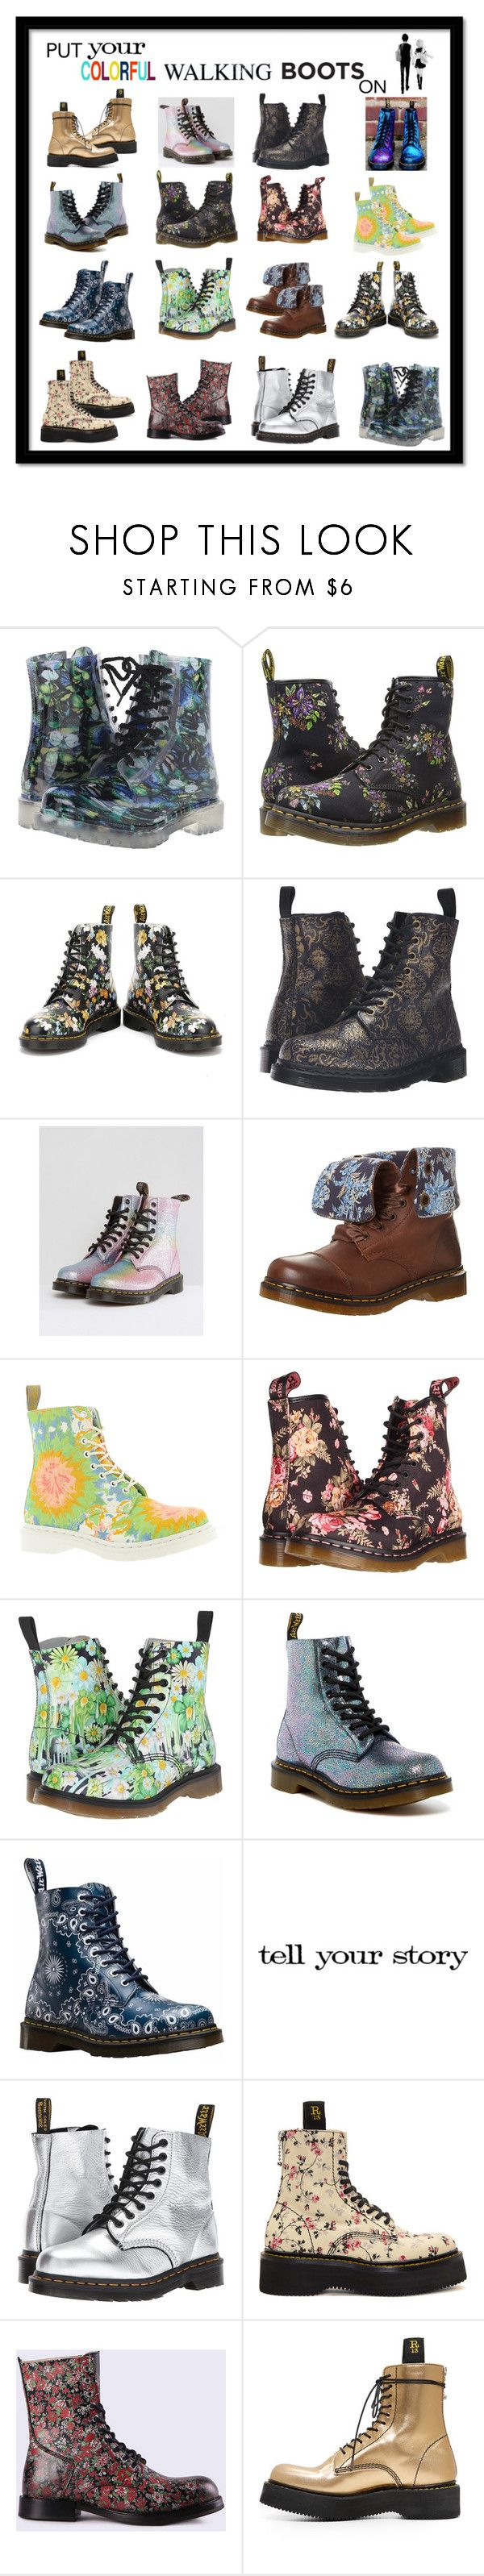 """""""Geen titel #393"""" by miriam-witte ❤ liked on Polyvore featuring Dirty Laundry, Dr. Martens, INDIE HAIR, Tim Holtz, R13 and Diesel"""